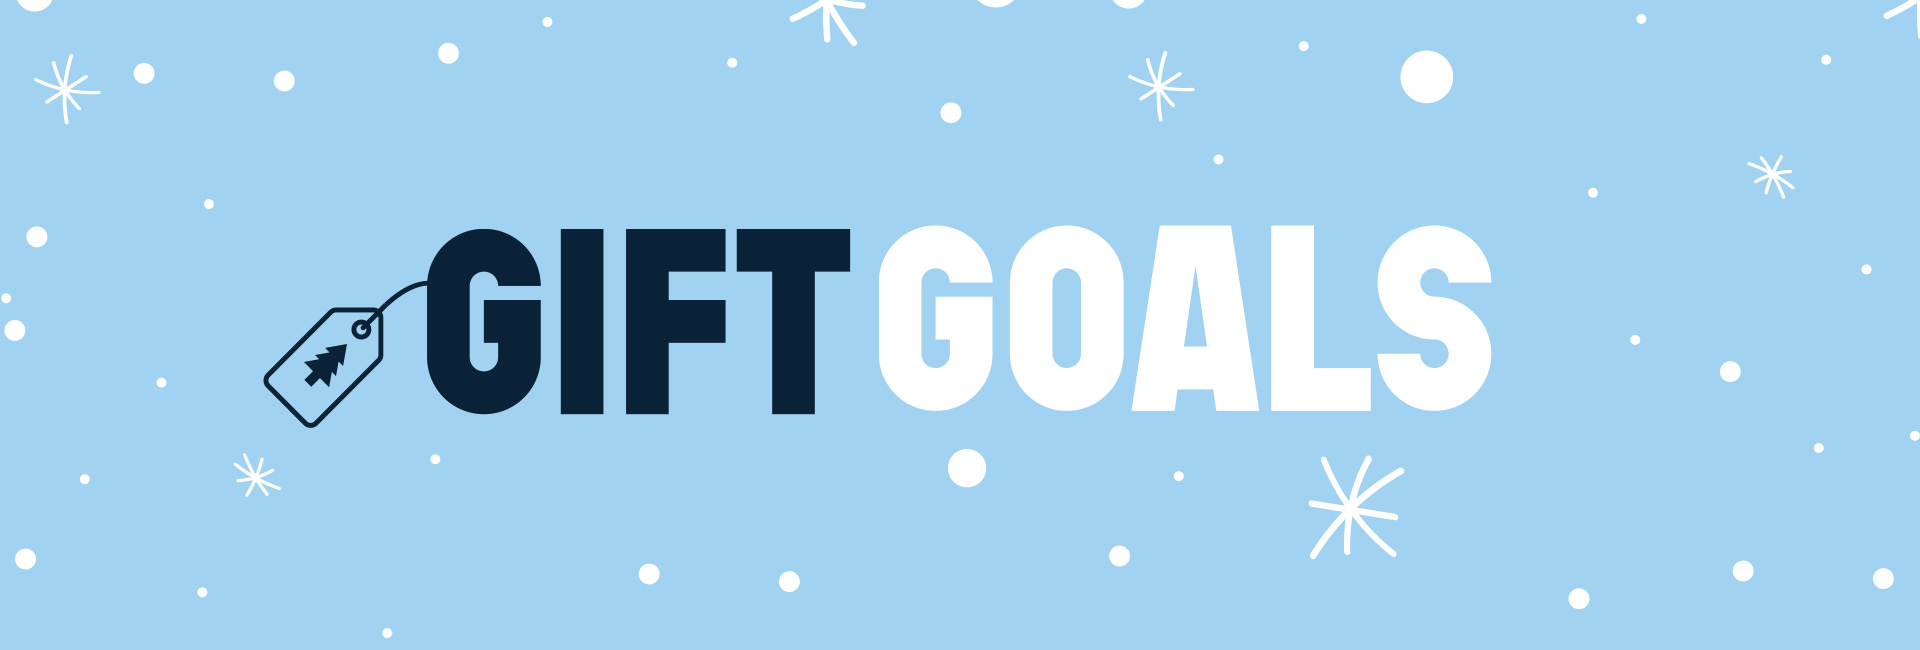 Cleveland Monsters Gift Goals Page Banner